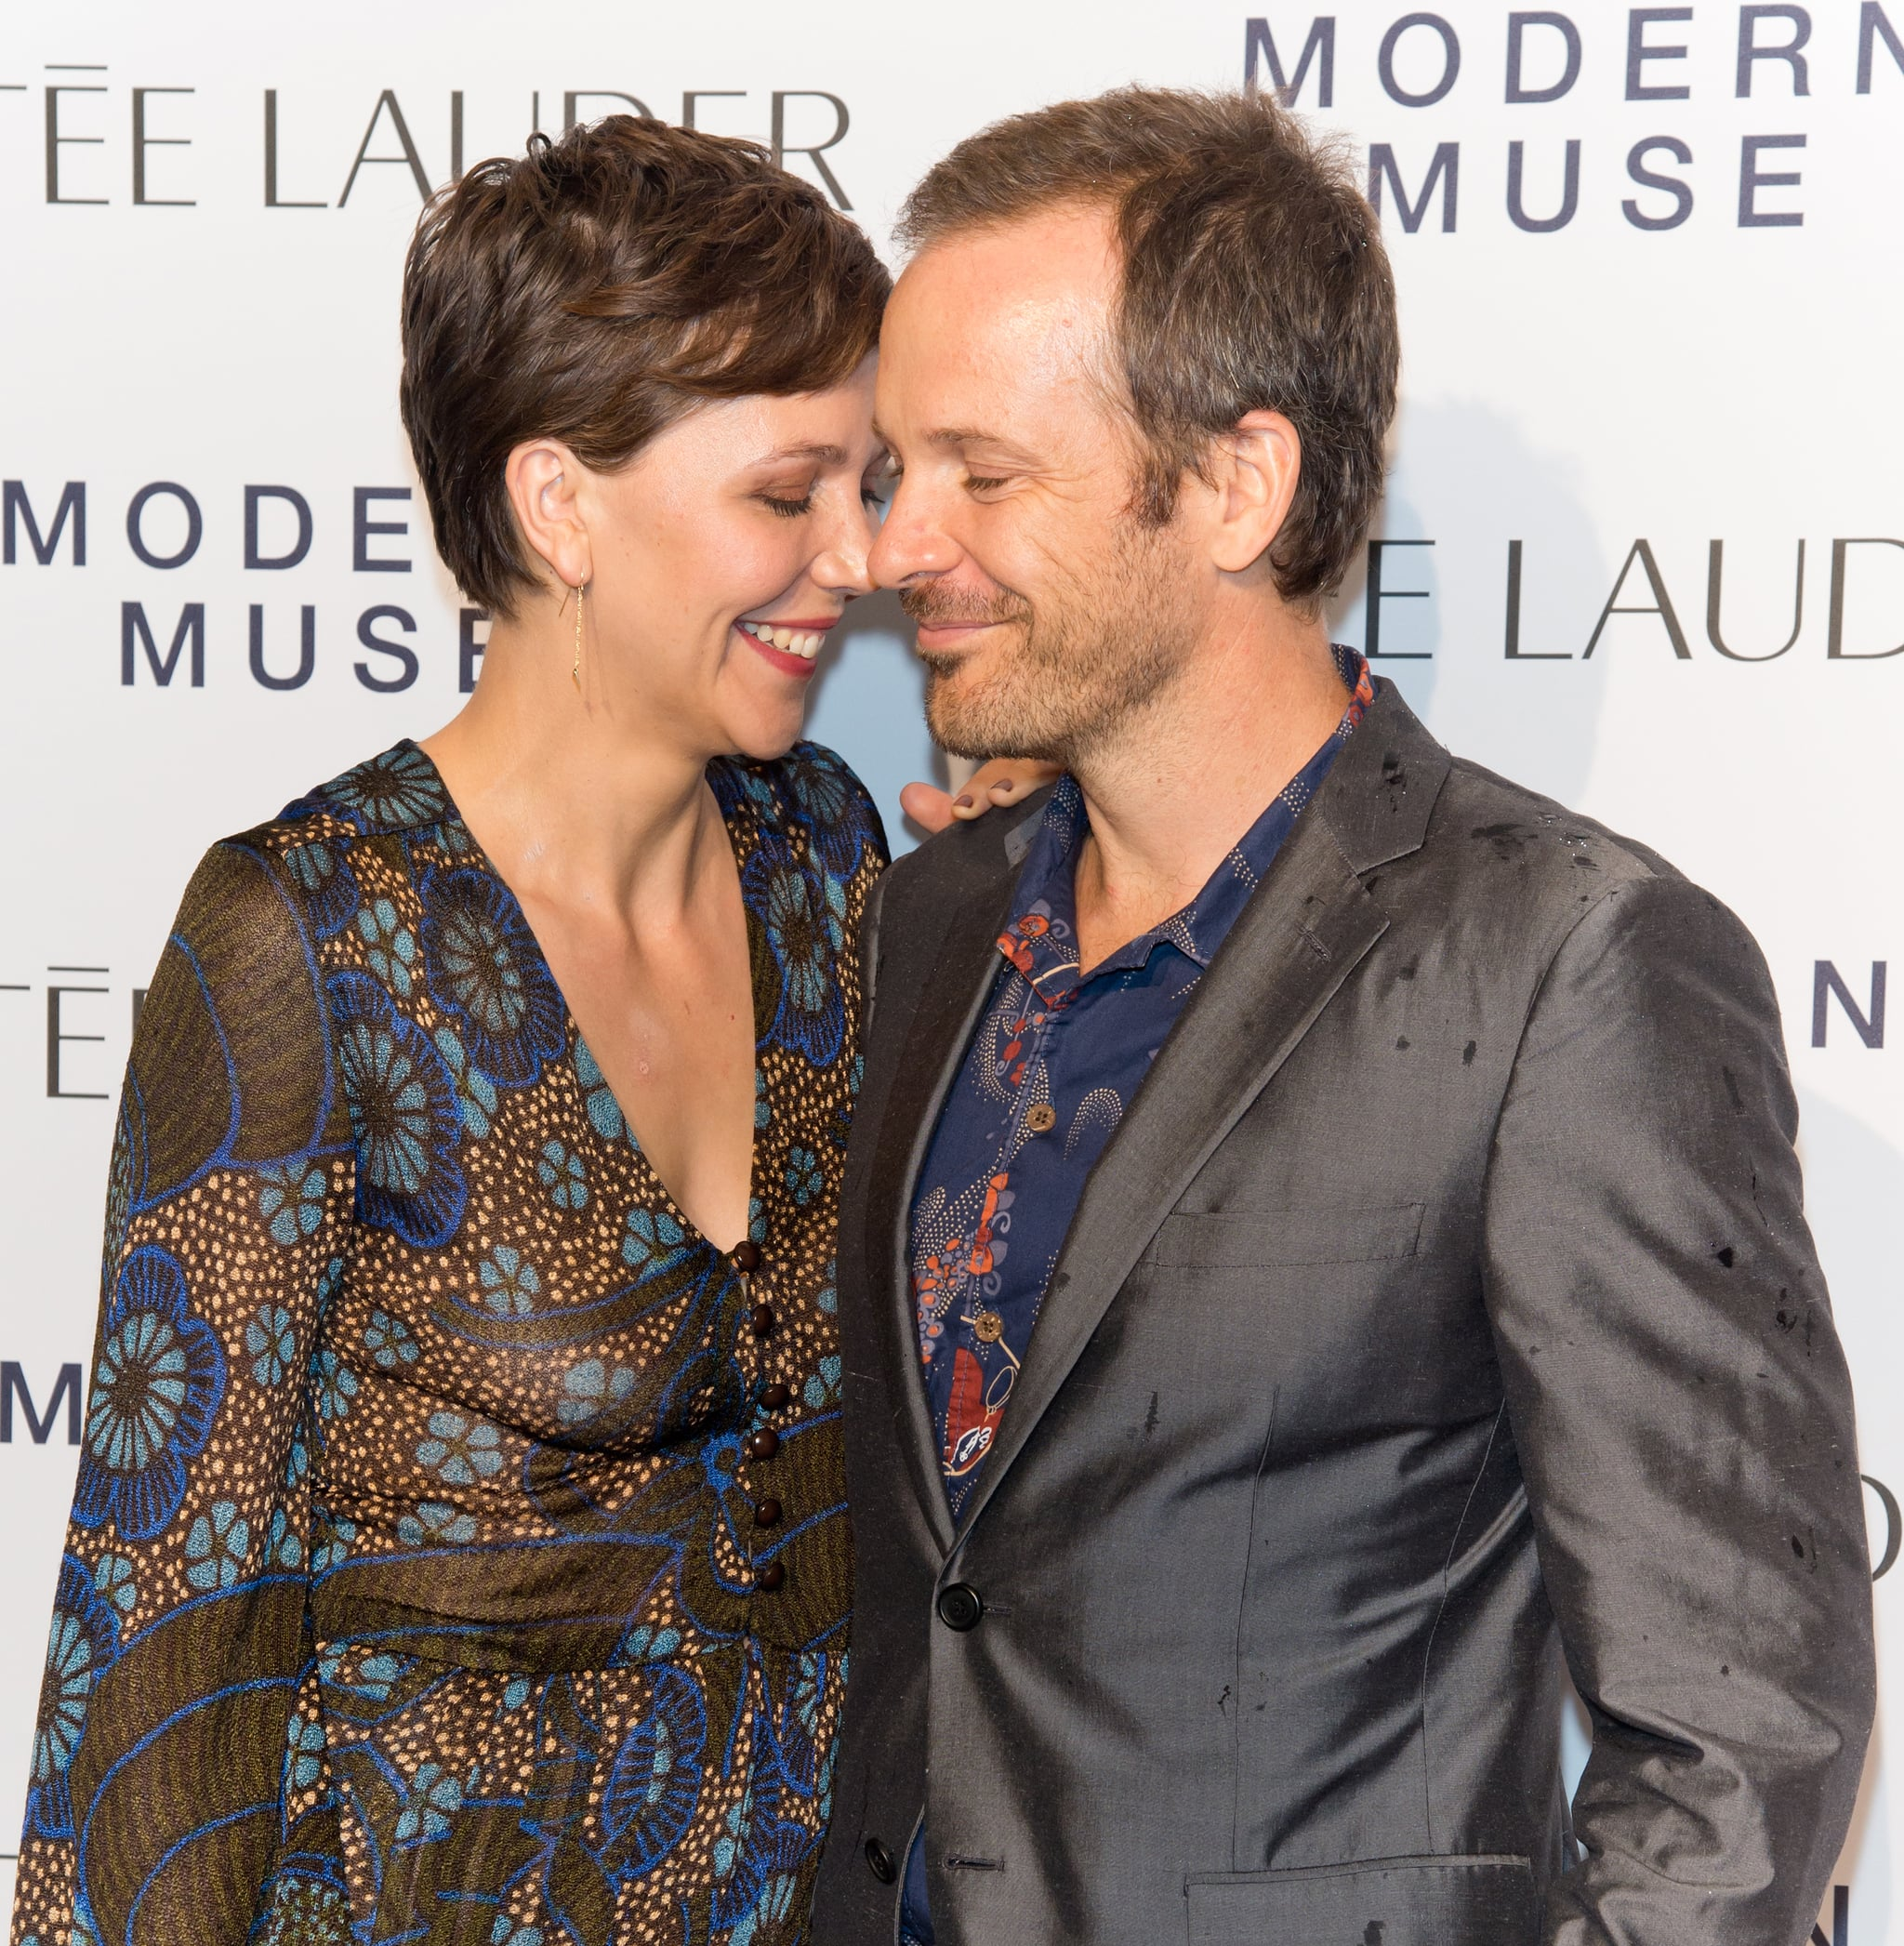 Maggie Gyllenhaal shared a sweet moment with her husband, Peter Sarsgaard, at the Guggenheim Museum.